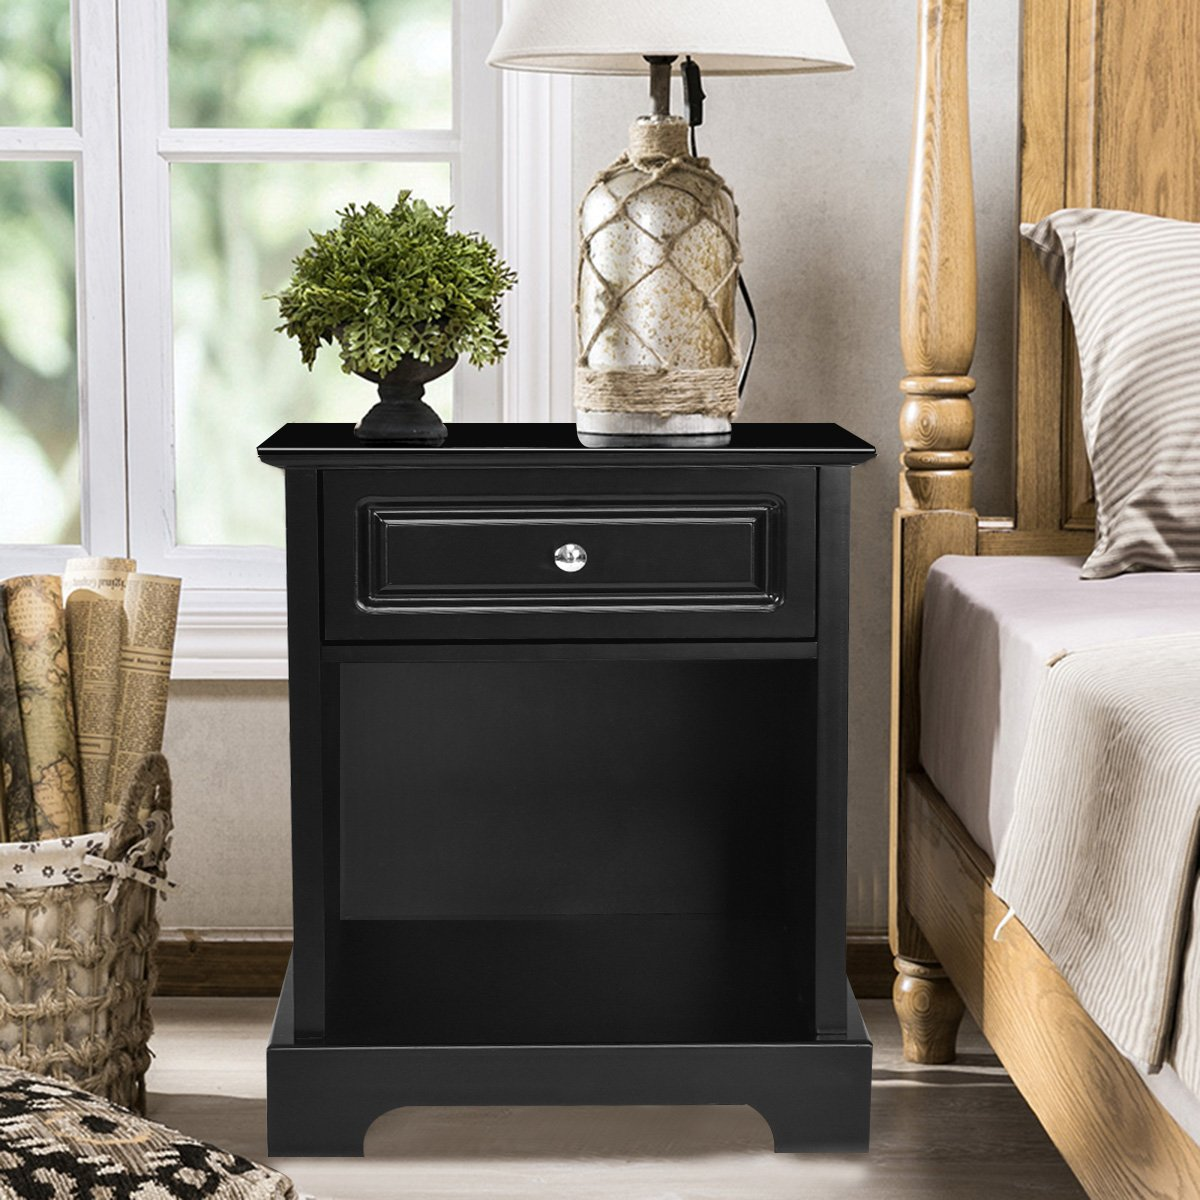 giantex end table drawer and open shelf for home winsome squamish accent with espresso finish living room furniture chest sofa side bedside storage nightstand black kitchen dining